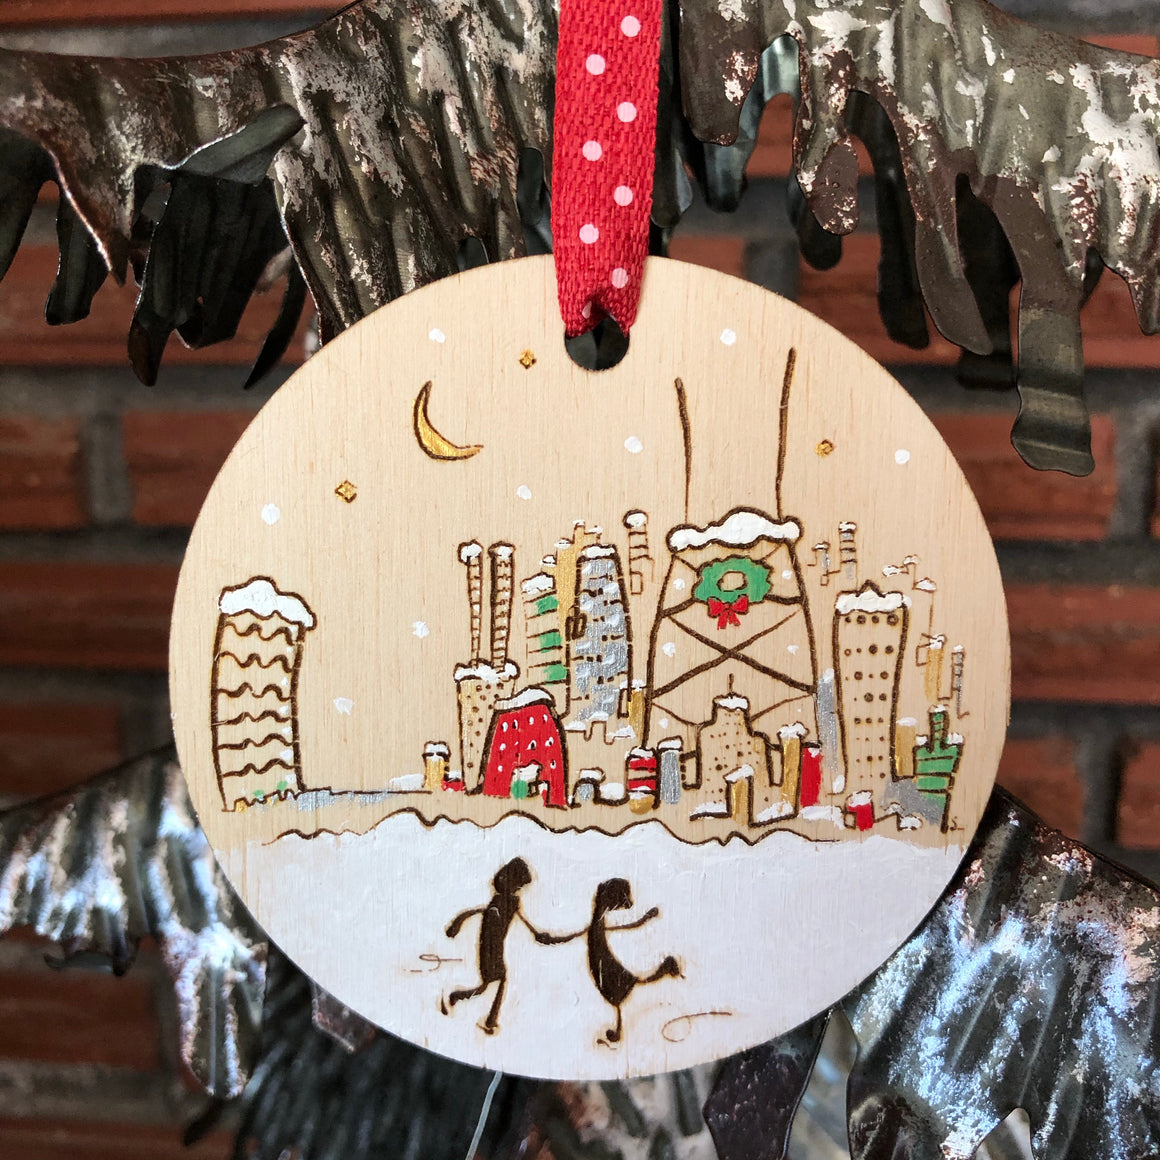 Couple skating in Chicago Ornament | Chicago Christmas decoration